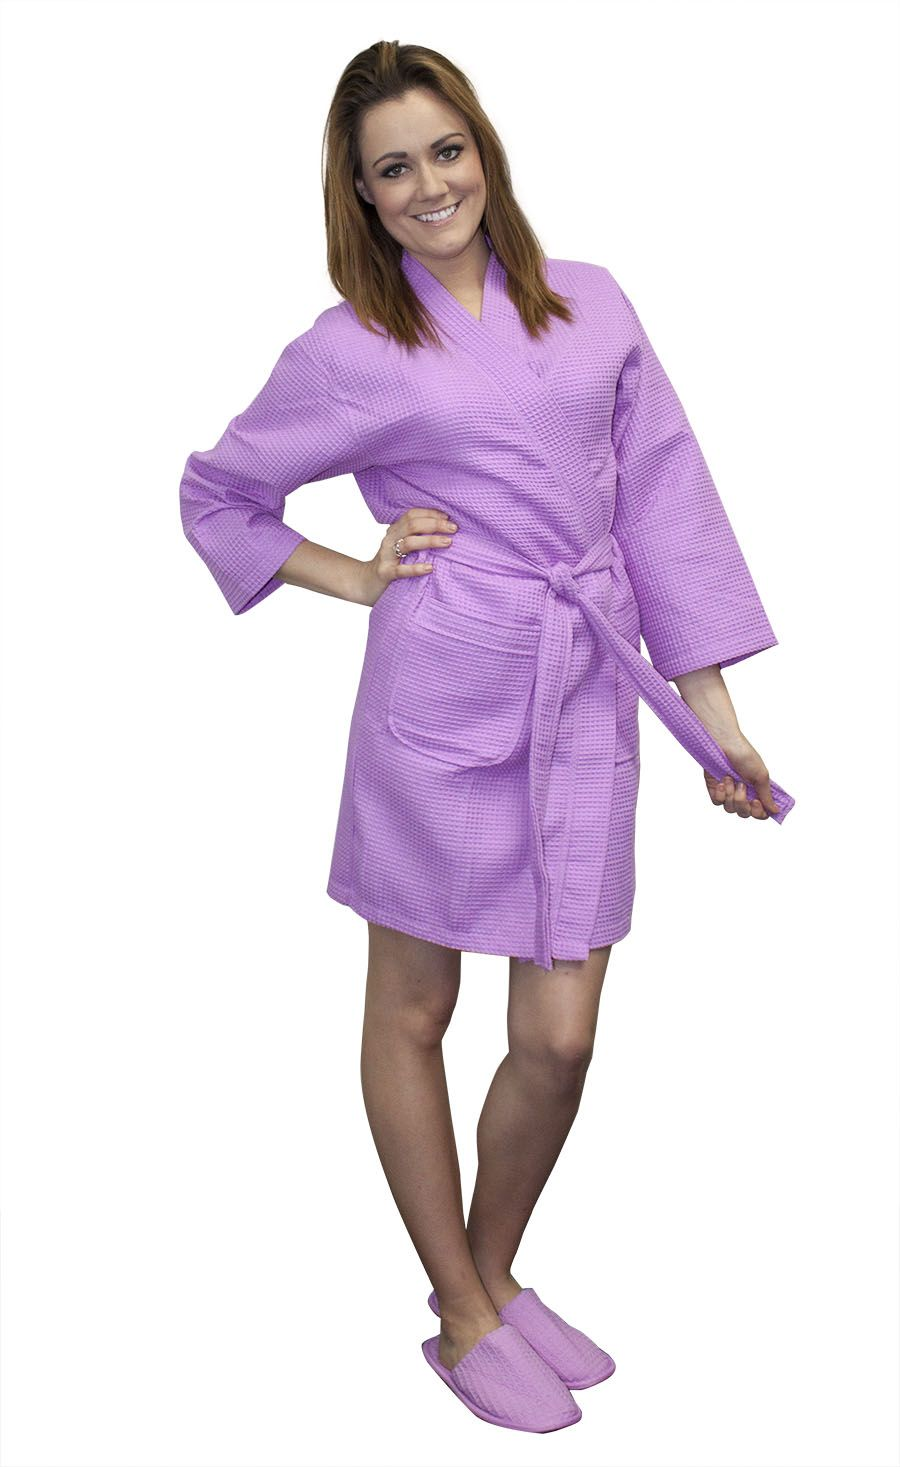 d3530f2571 Cottonage s Purple Kimono Robes made of 60% cotton and 40% polyester waffle  weave fabric